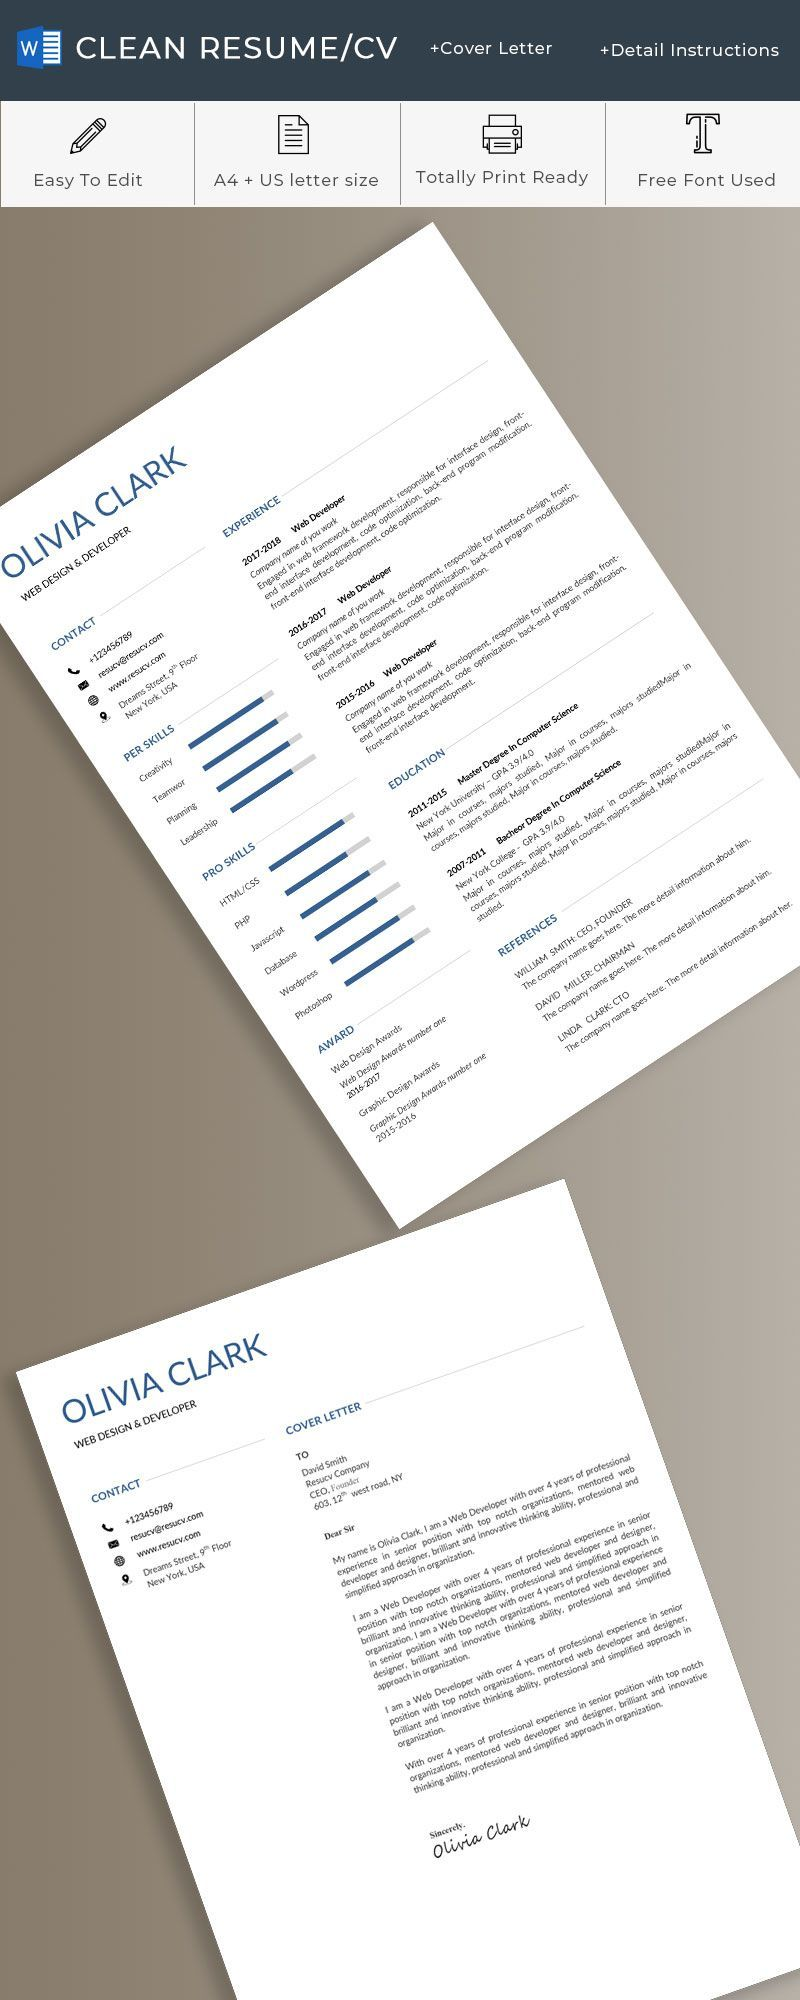 a beautiful and elegant resume tempaltes, with word format